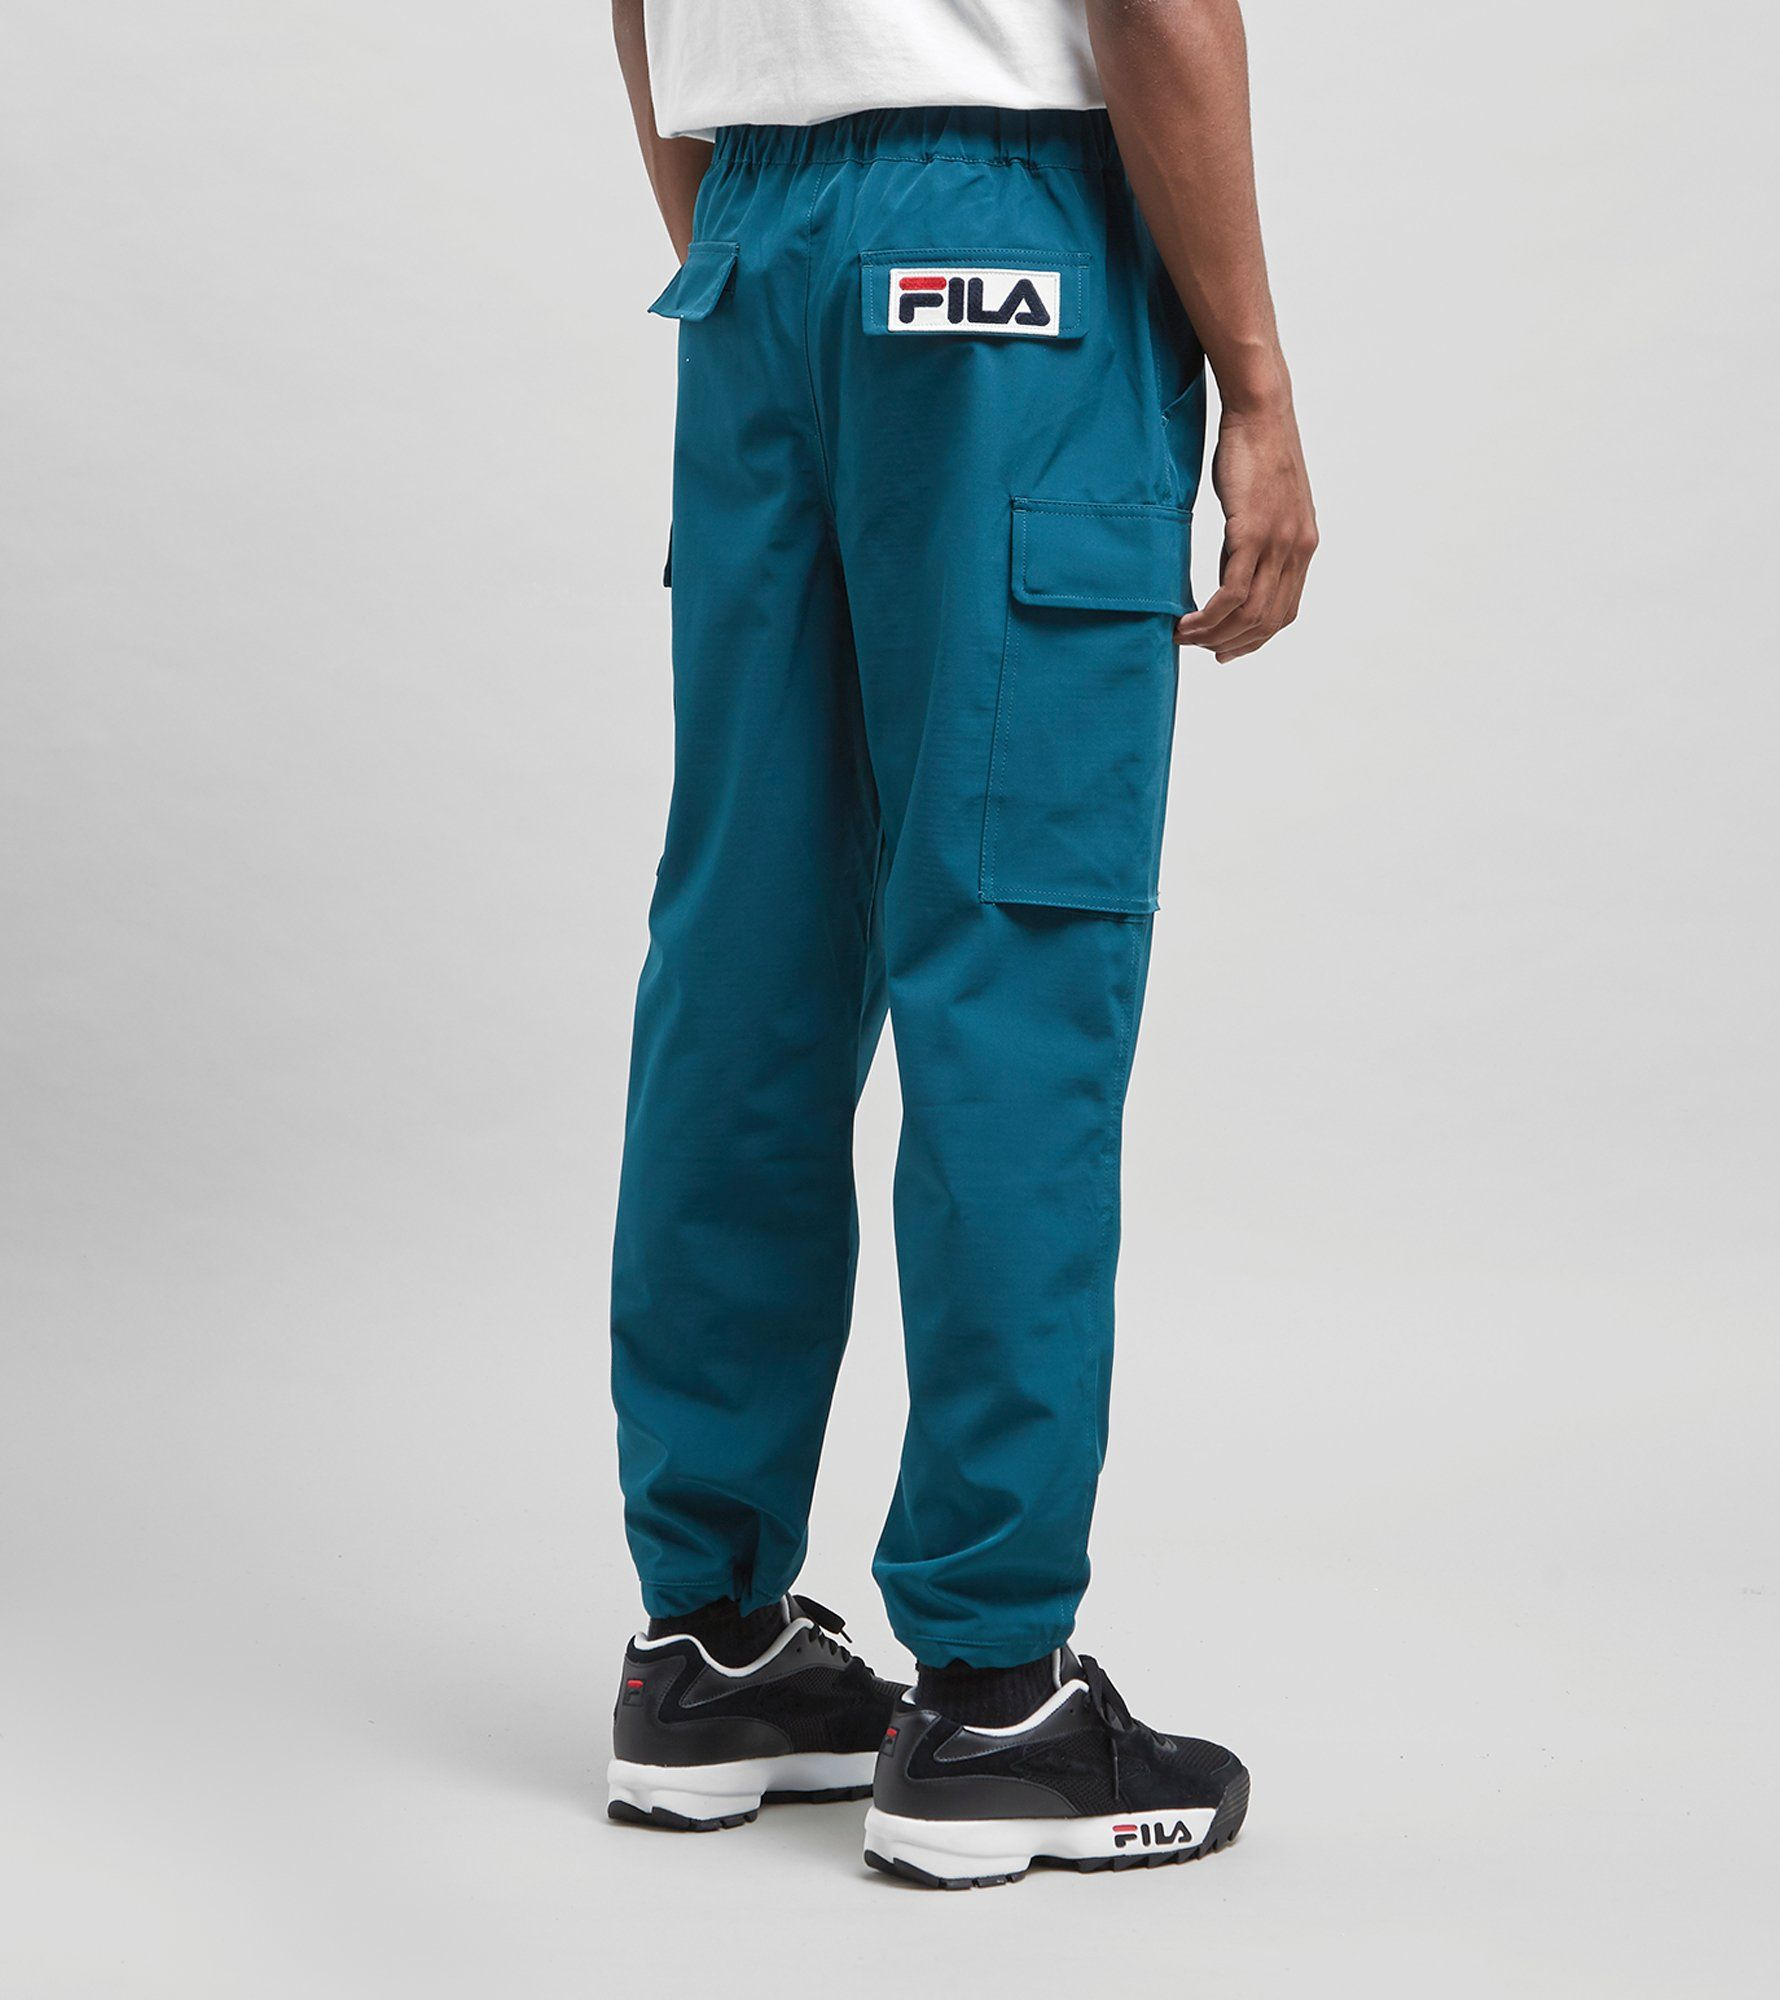 Fila Youla Cargo Pants - size? Exclusive